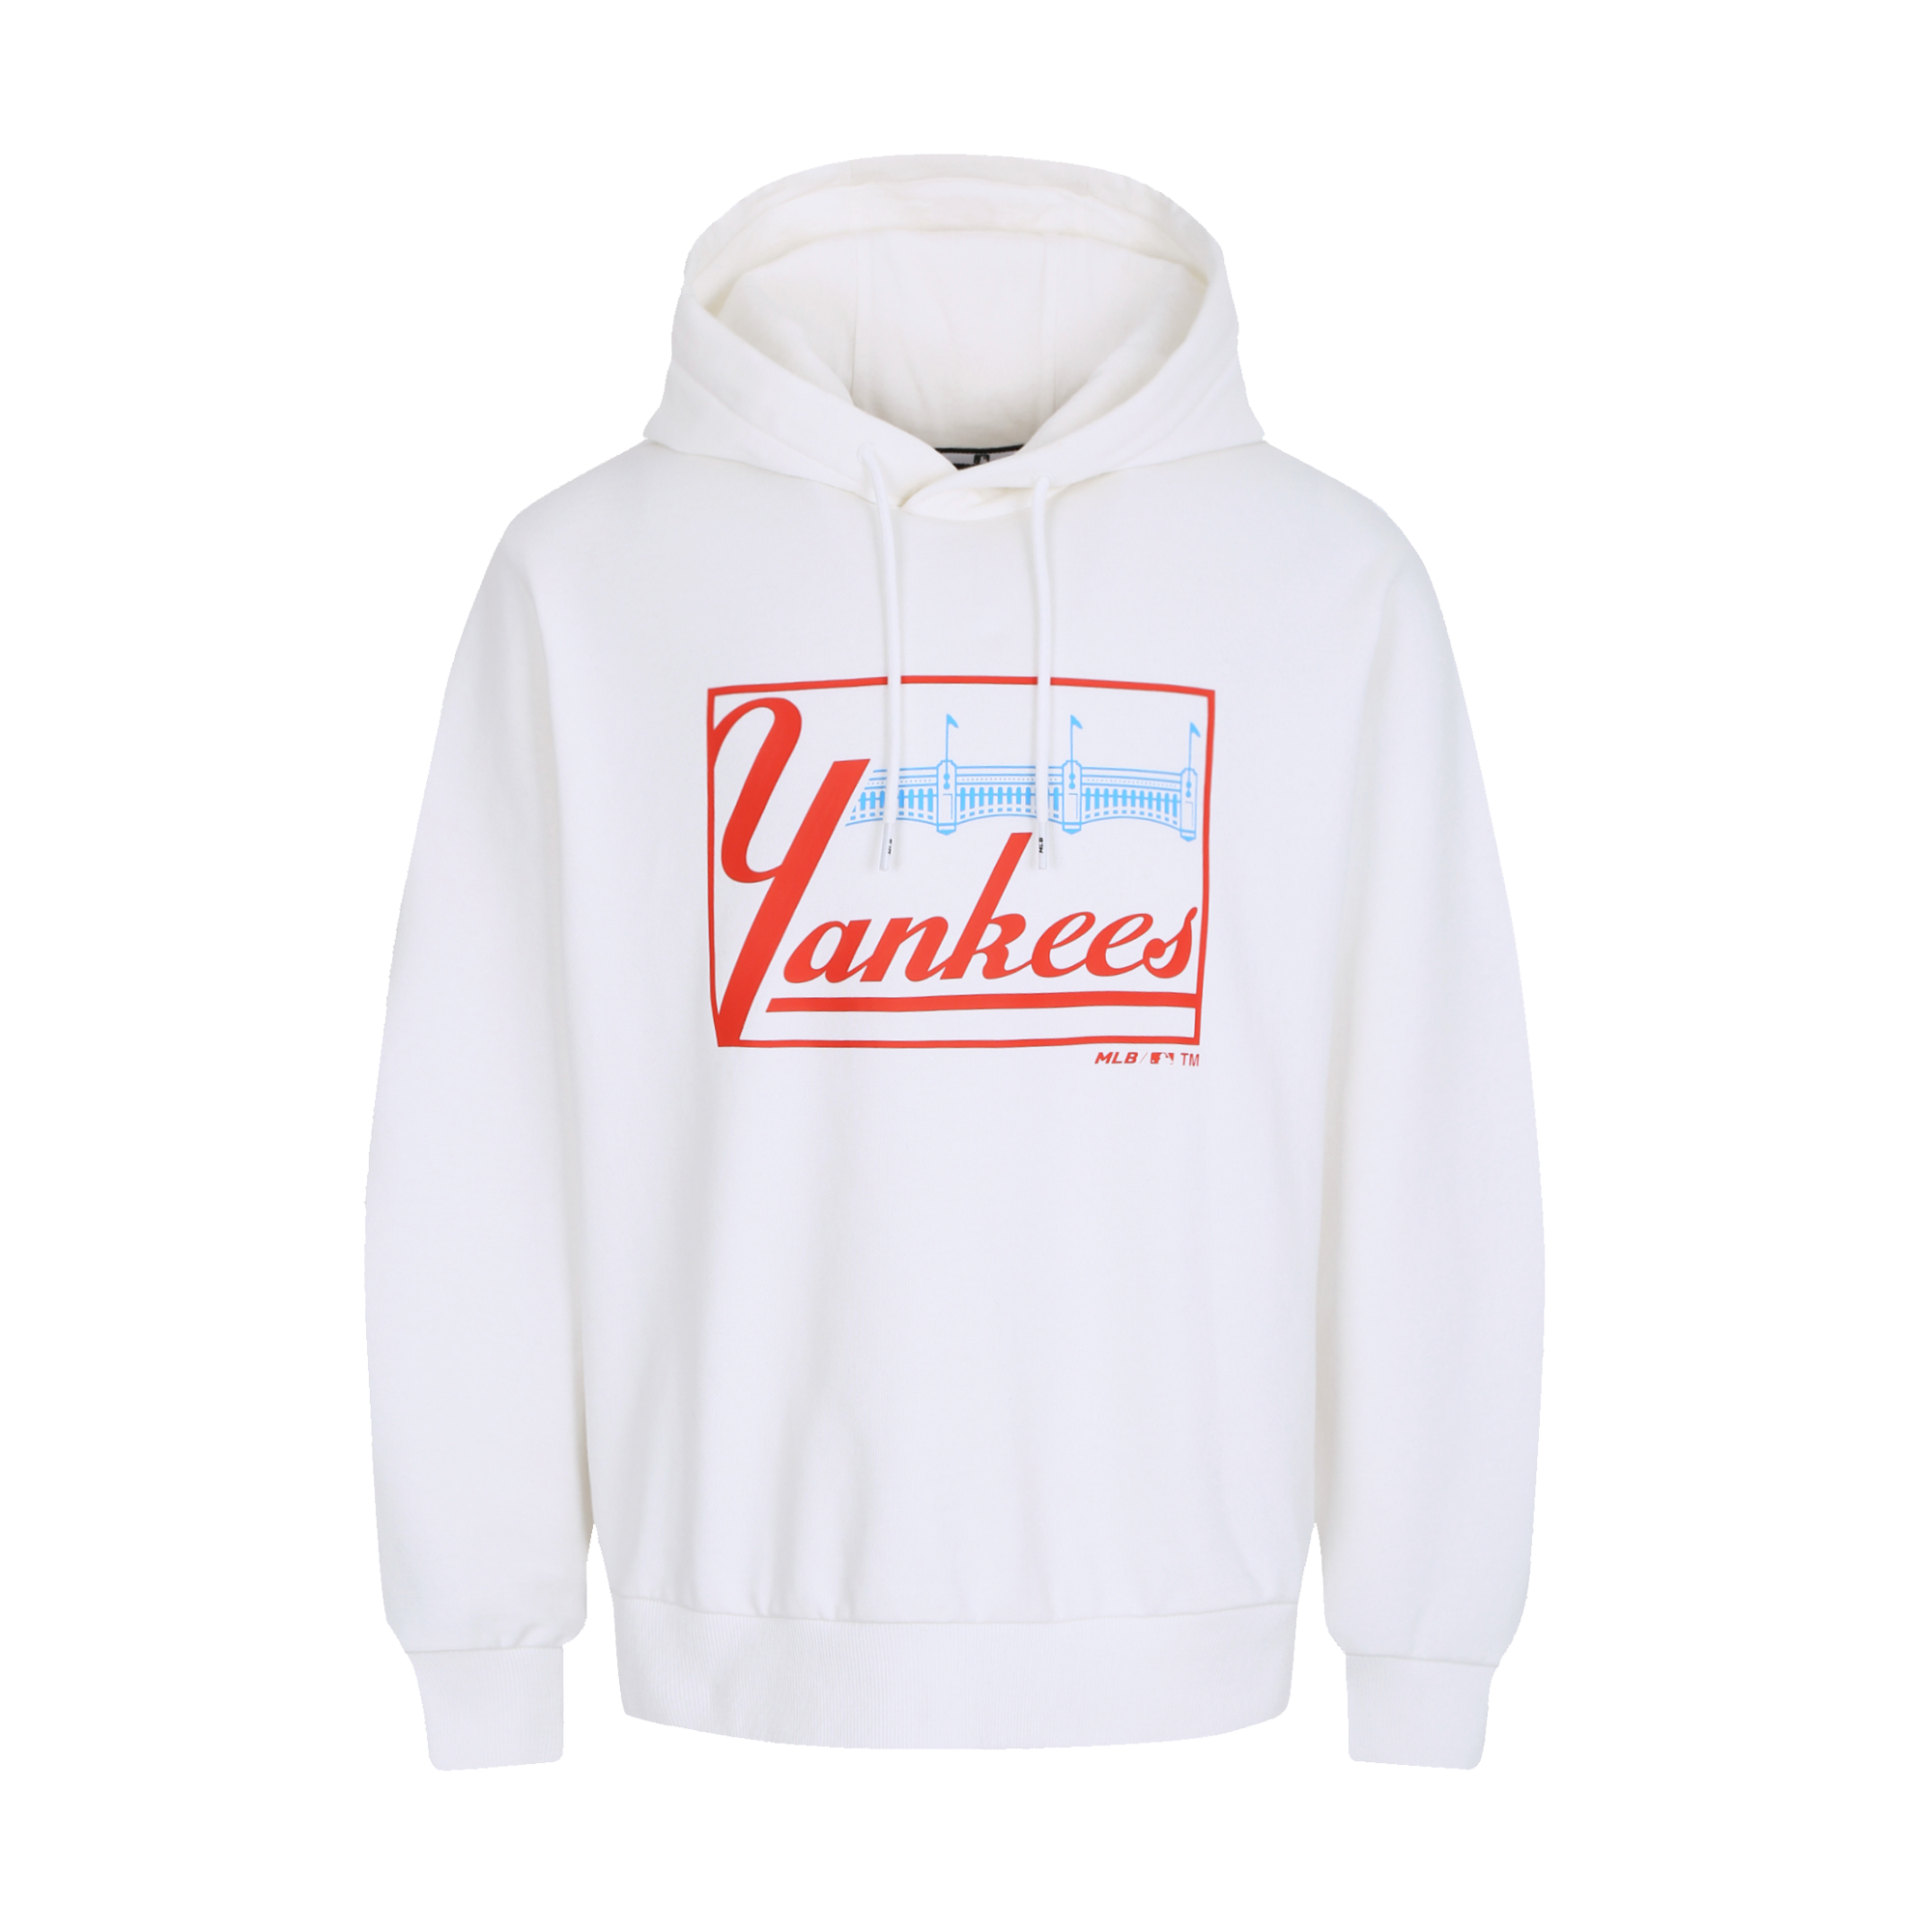 NEW YORK YANKEES VINTAGE GRAPHIC HOODIE